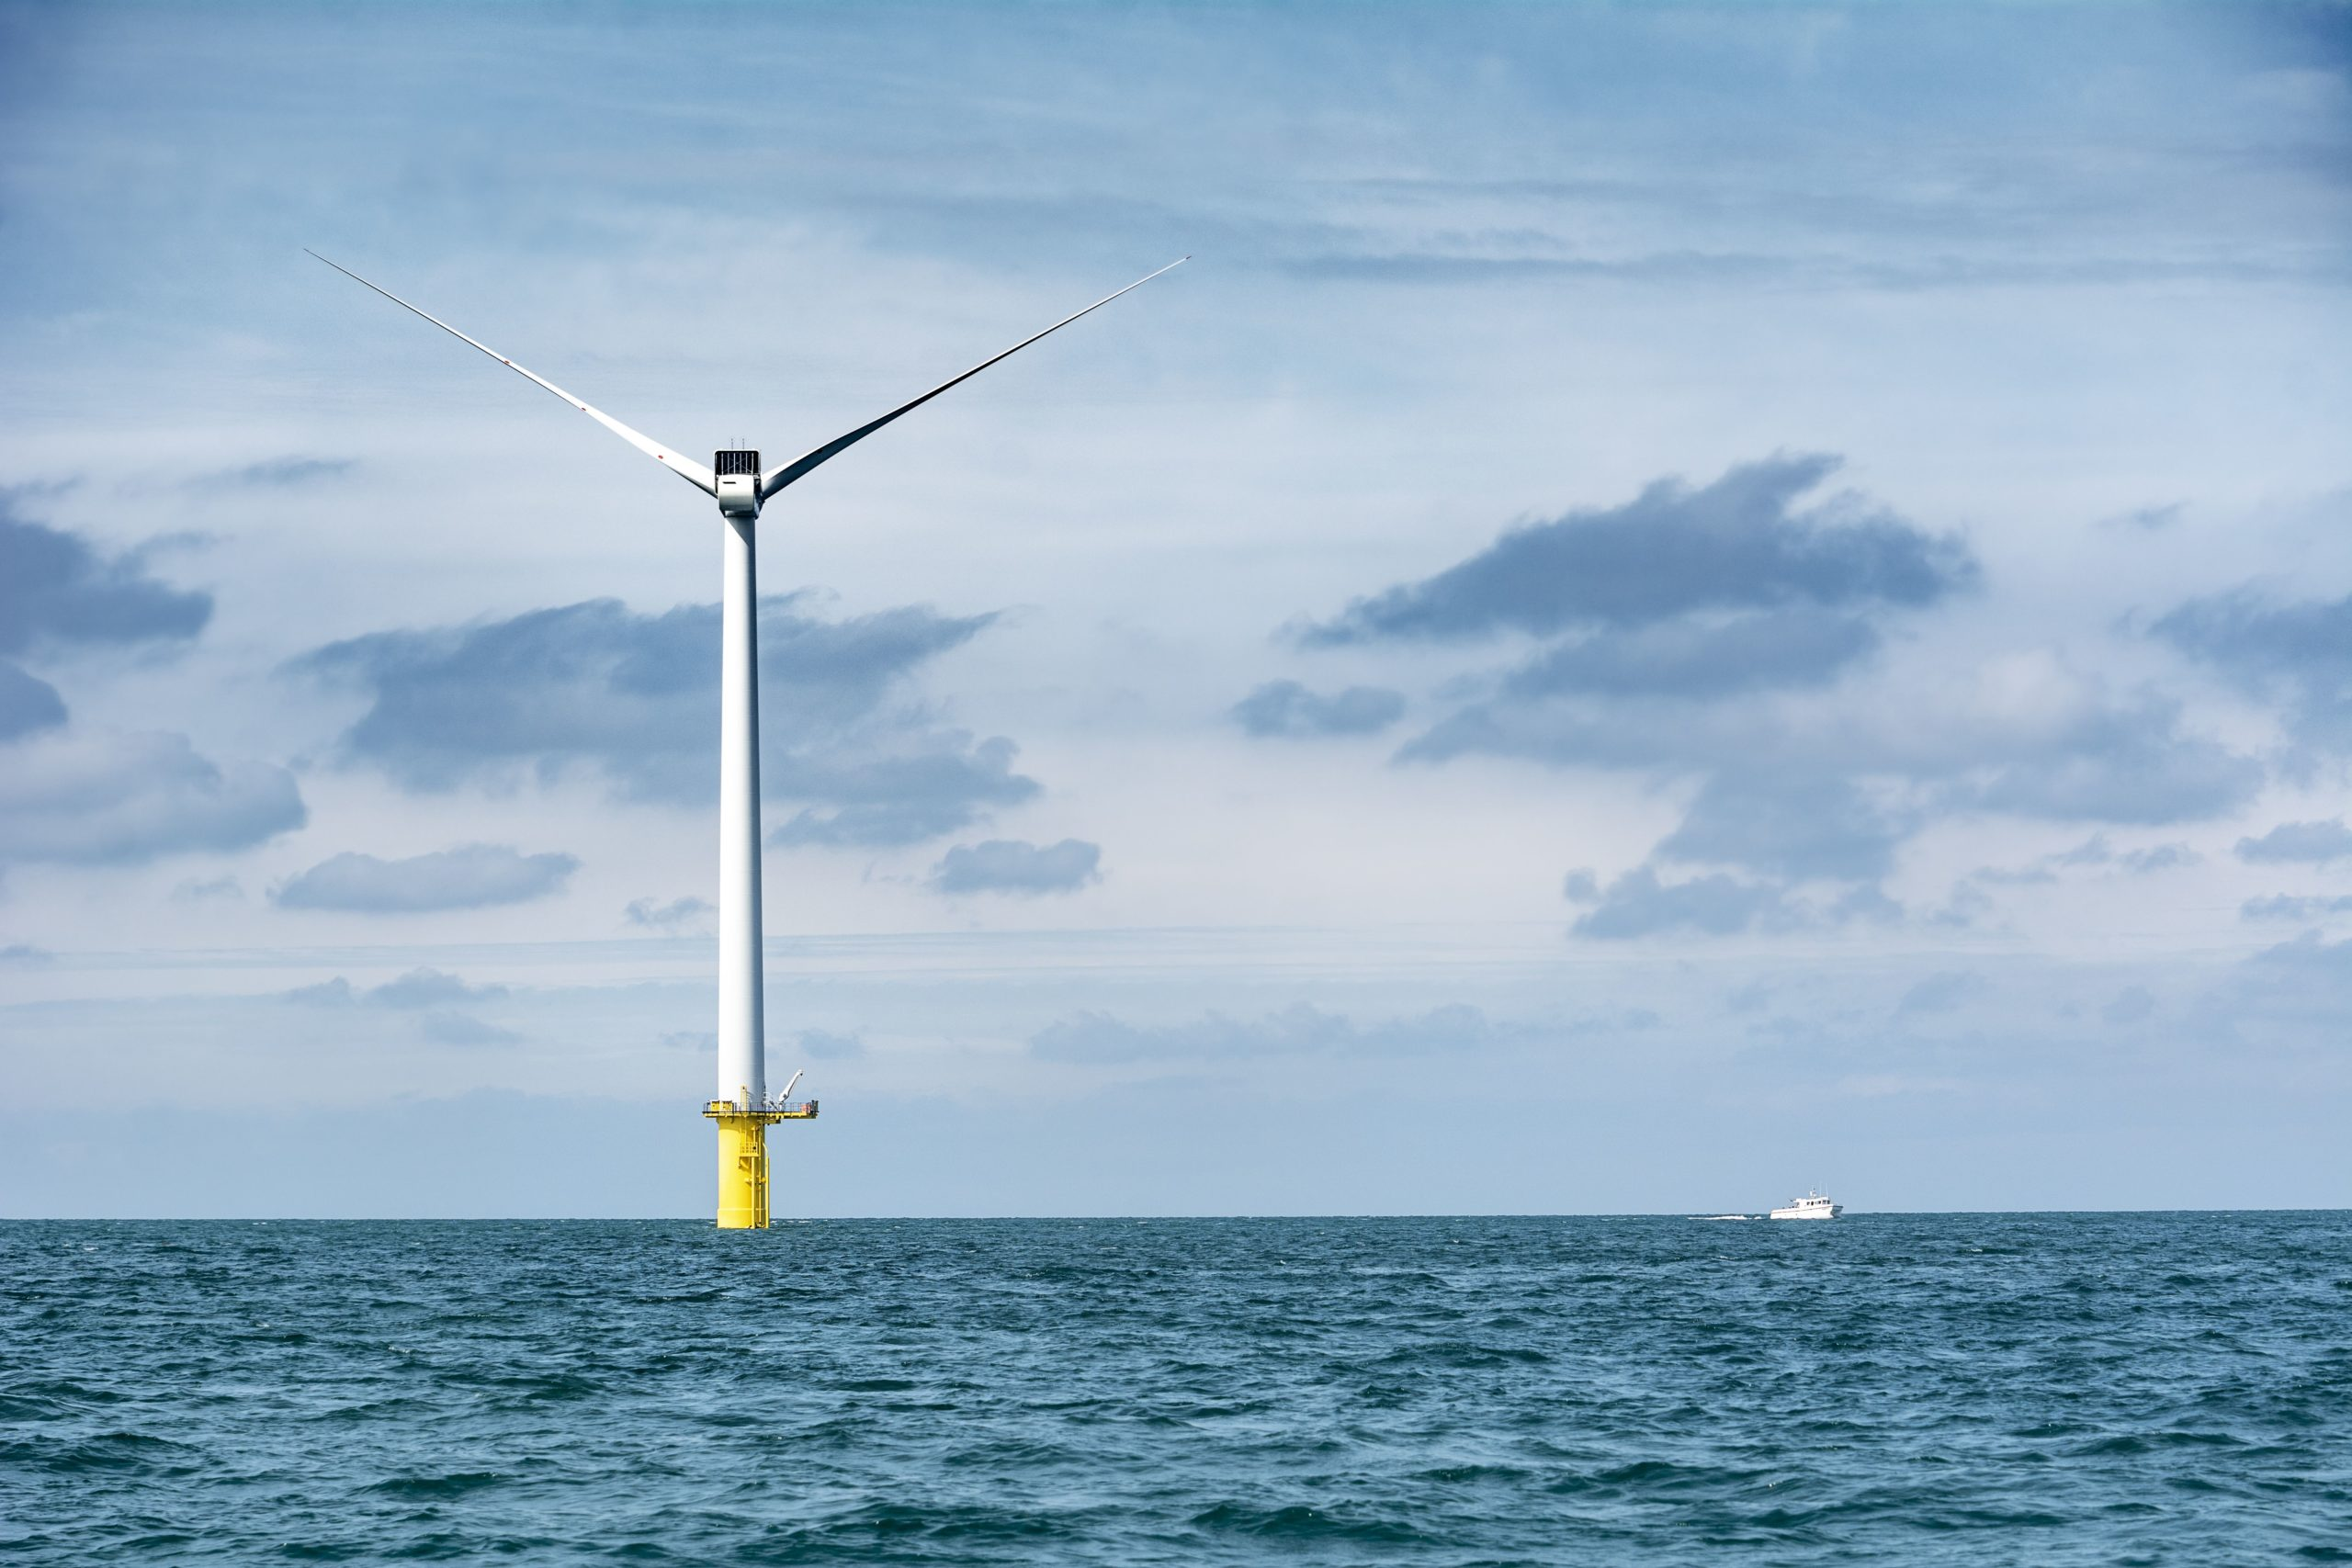 Shared Grid Offshore New England Saves Over USD 1 Billion Onshore – Report